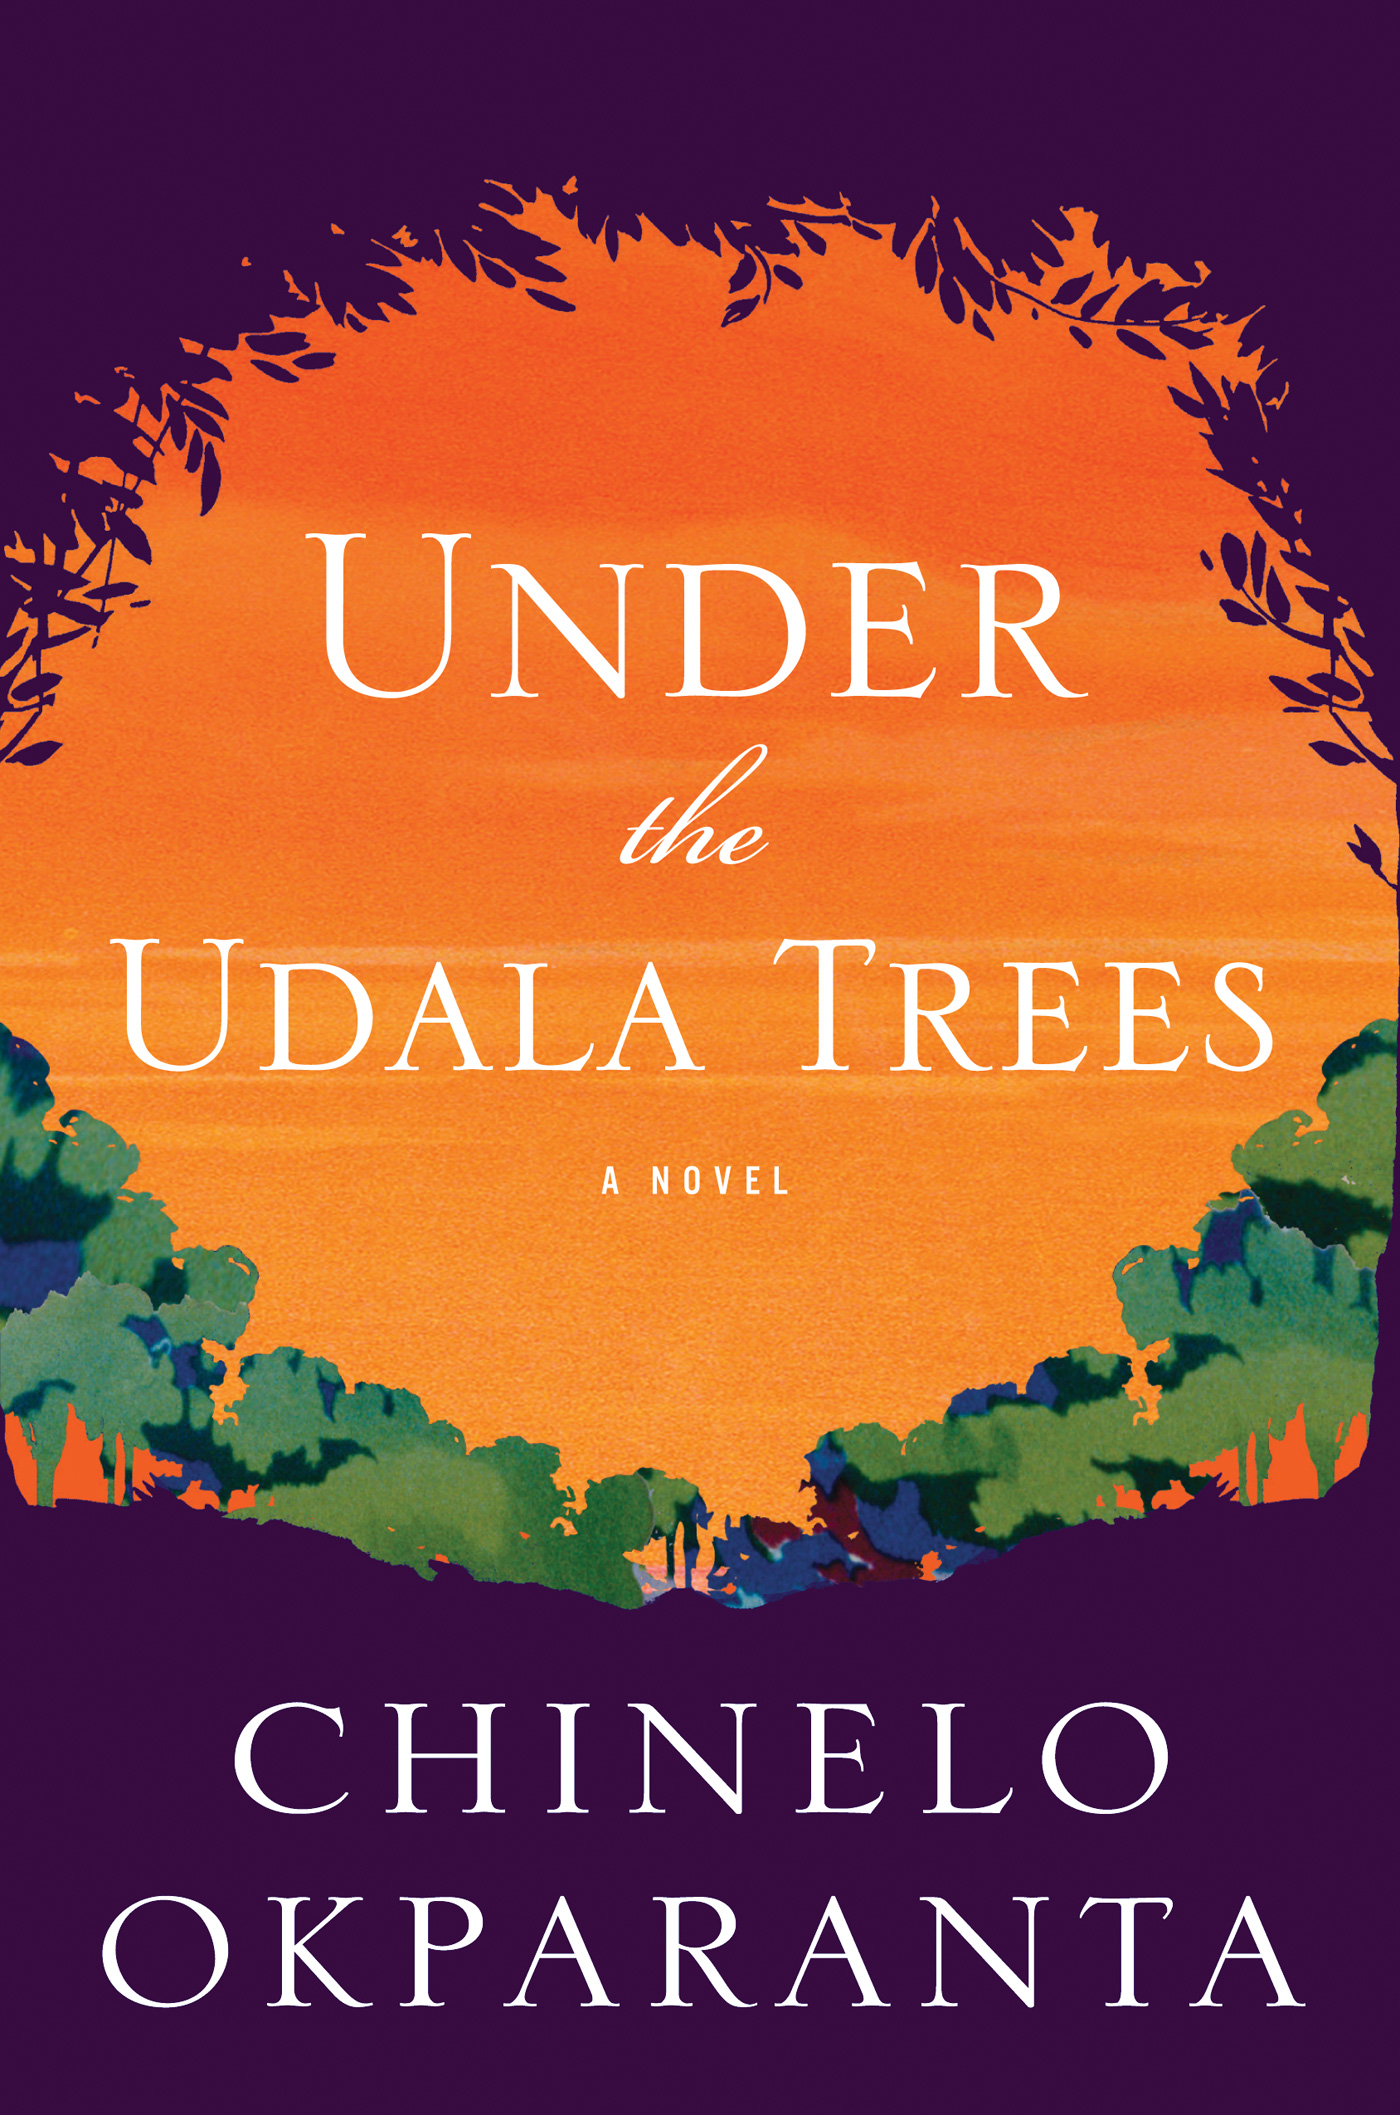 'Under The Udala Trees' by Chinelo Okparanta